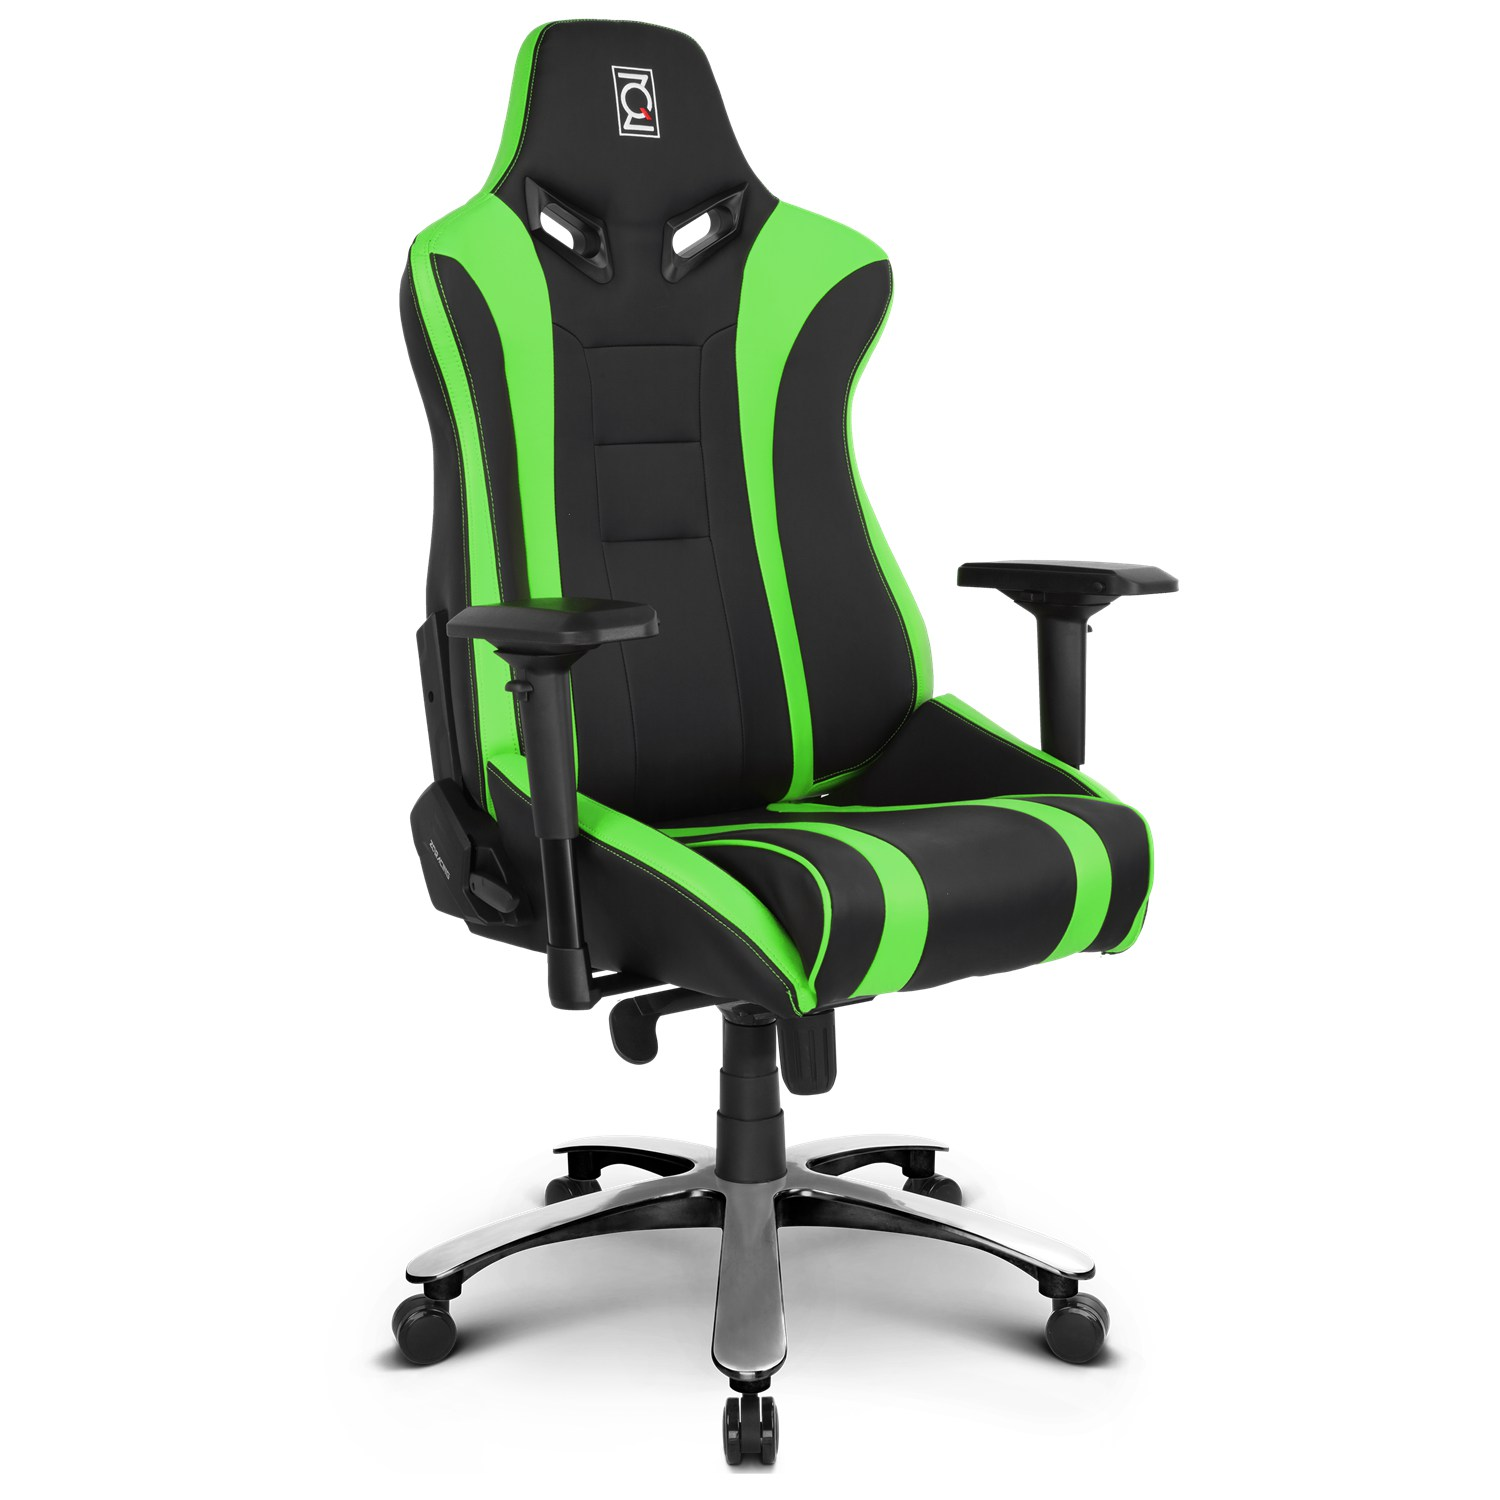 zqracing alien xl series gaming office chair green black zqracing